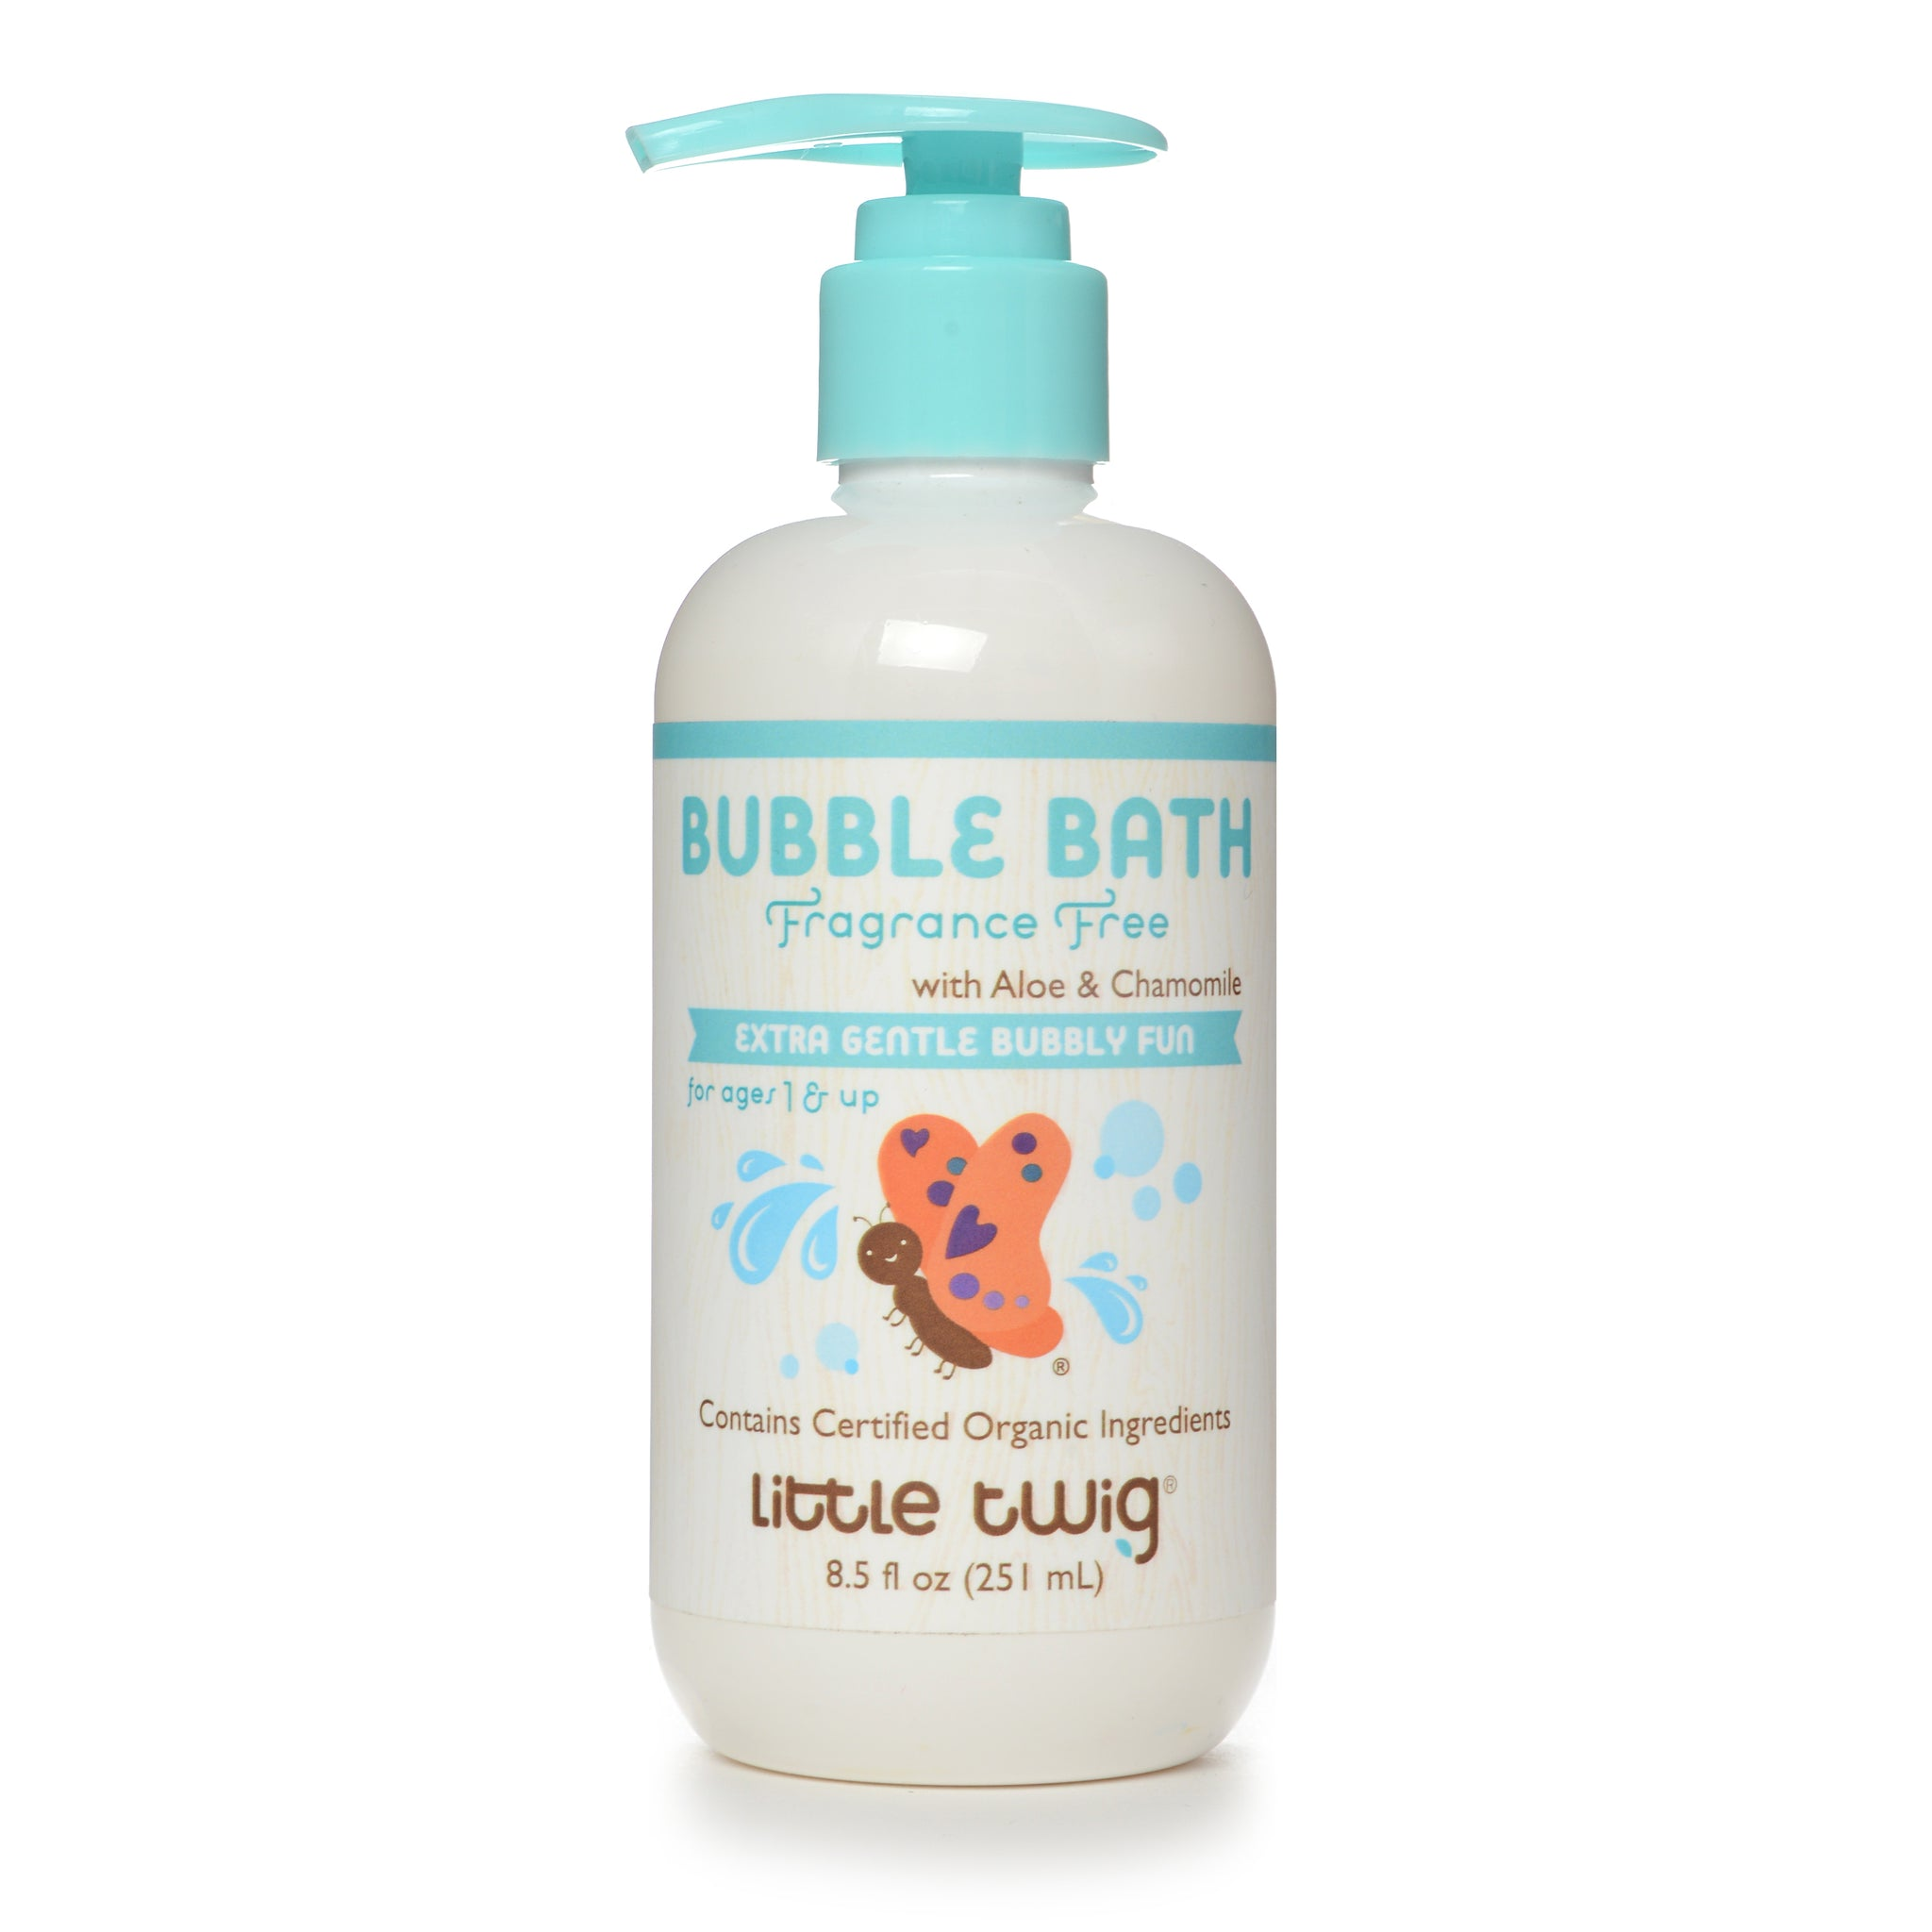 Fragrance Free Bubble Bath